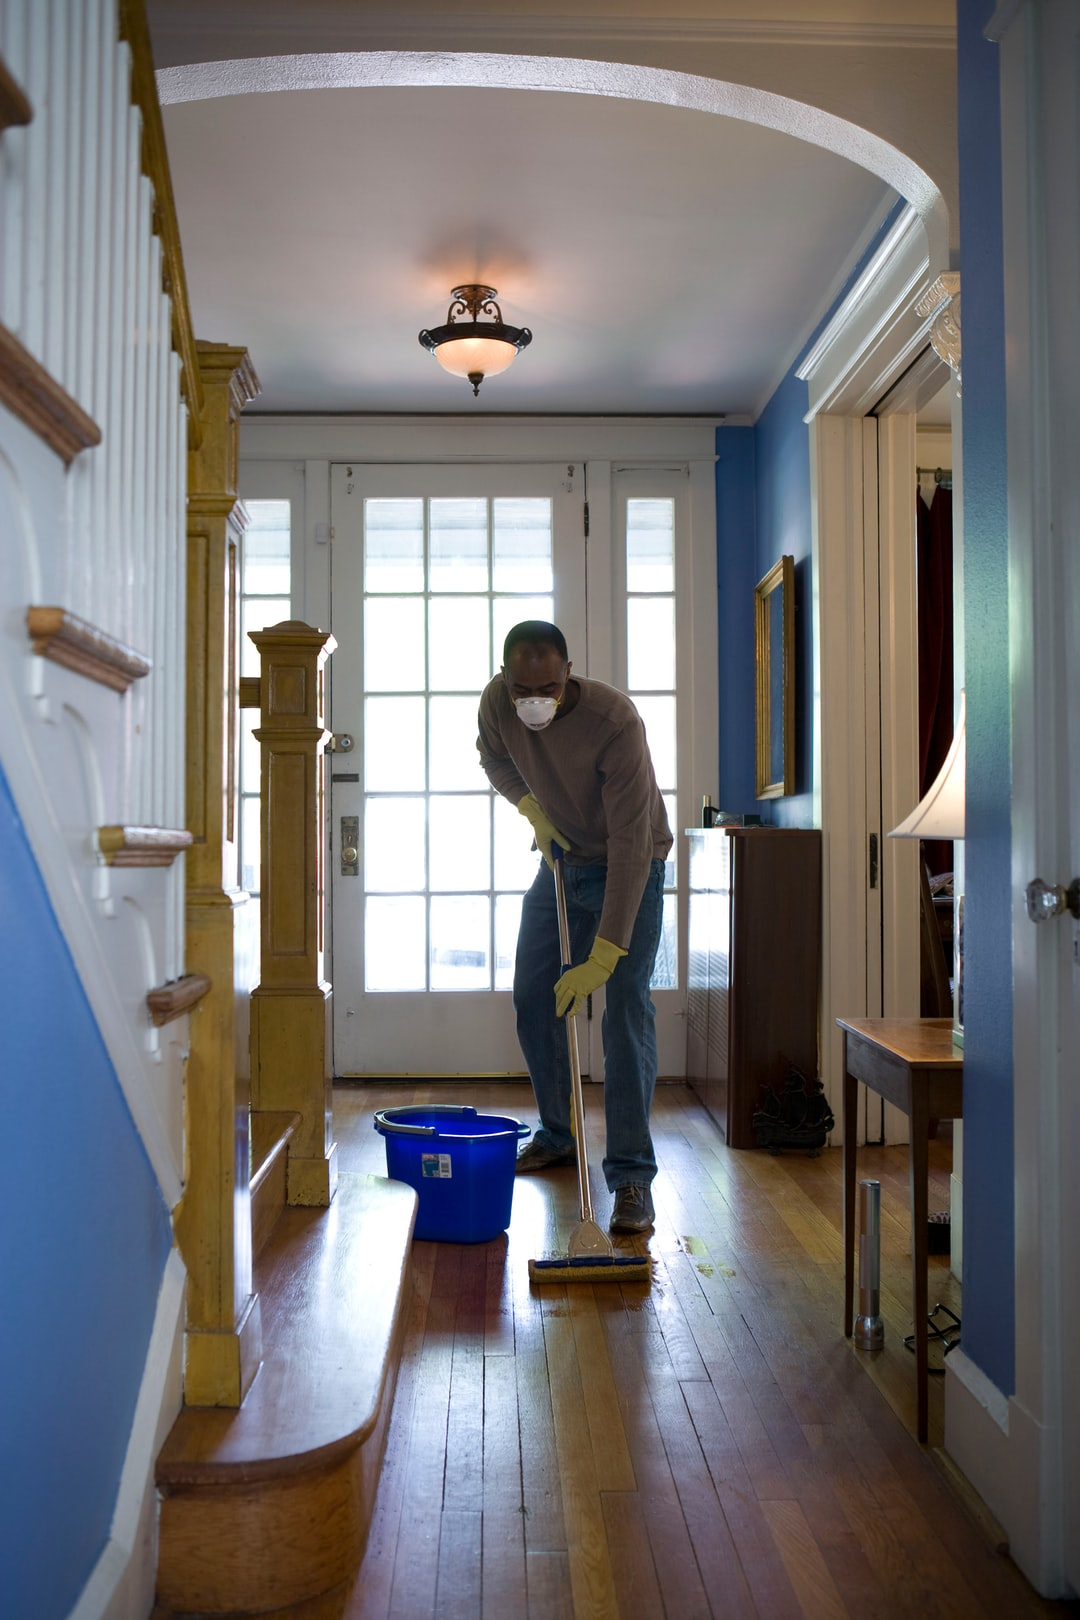 This African-American man was in the process of damp-mopping his home's entrance way. In this way airborne particulates including dust and pollen, could be removed from the inside of his home, thereby, reducing the detrimental effects these substances have upon the respiratory system of his family members. These irritants can sometimes result in sinus infections, and asthma.